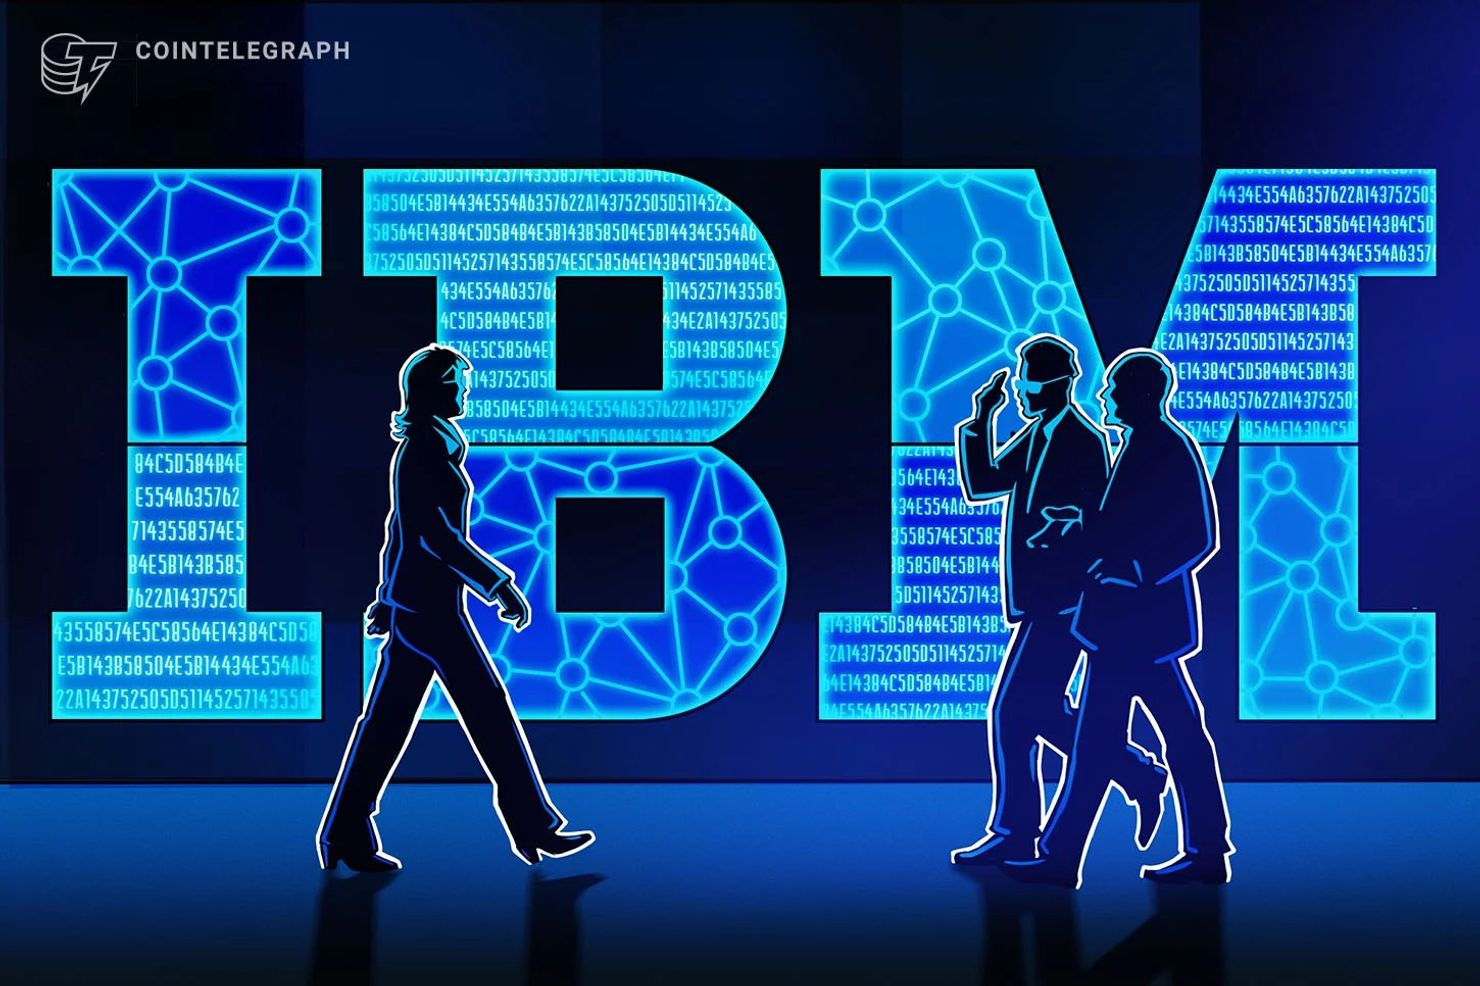 Ibm Patents Blockchain System To Create Trust Between Ar Game Amazon Ceo Files Patent Application For An Airbag That Protects Smart Phones Players Real World Locations